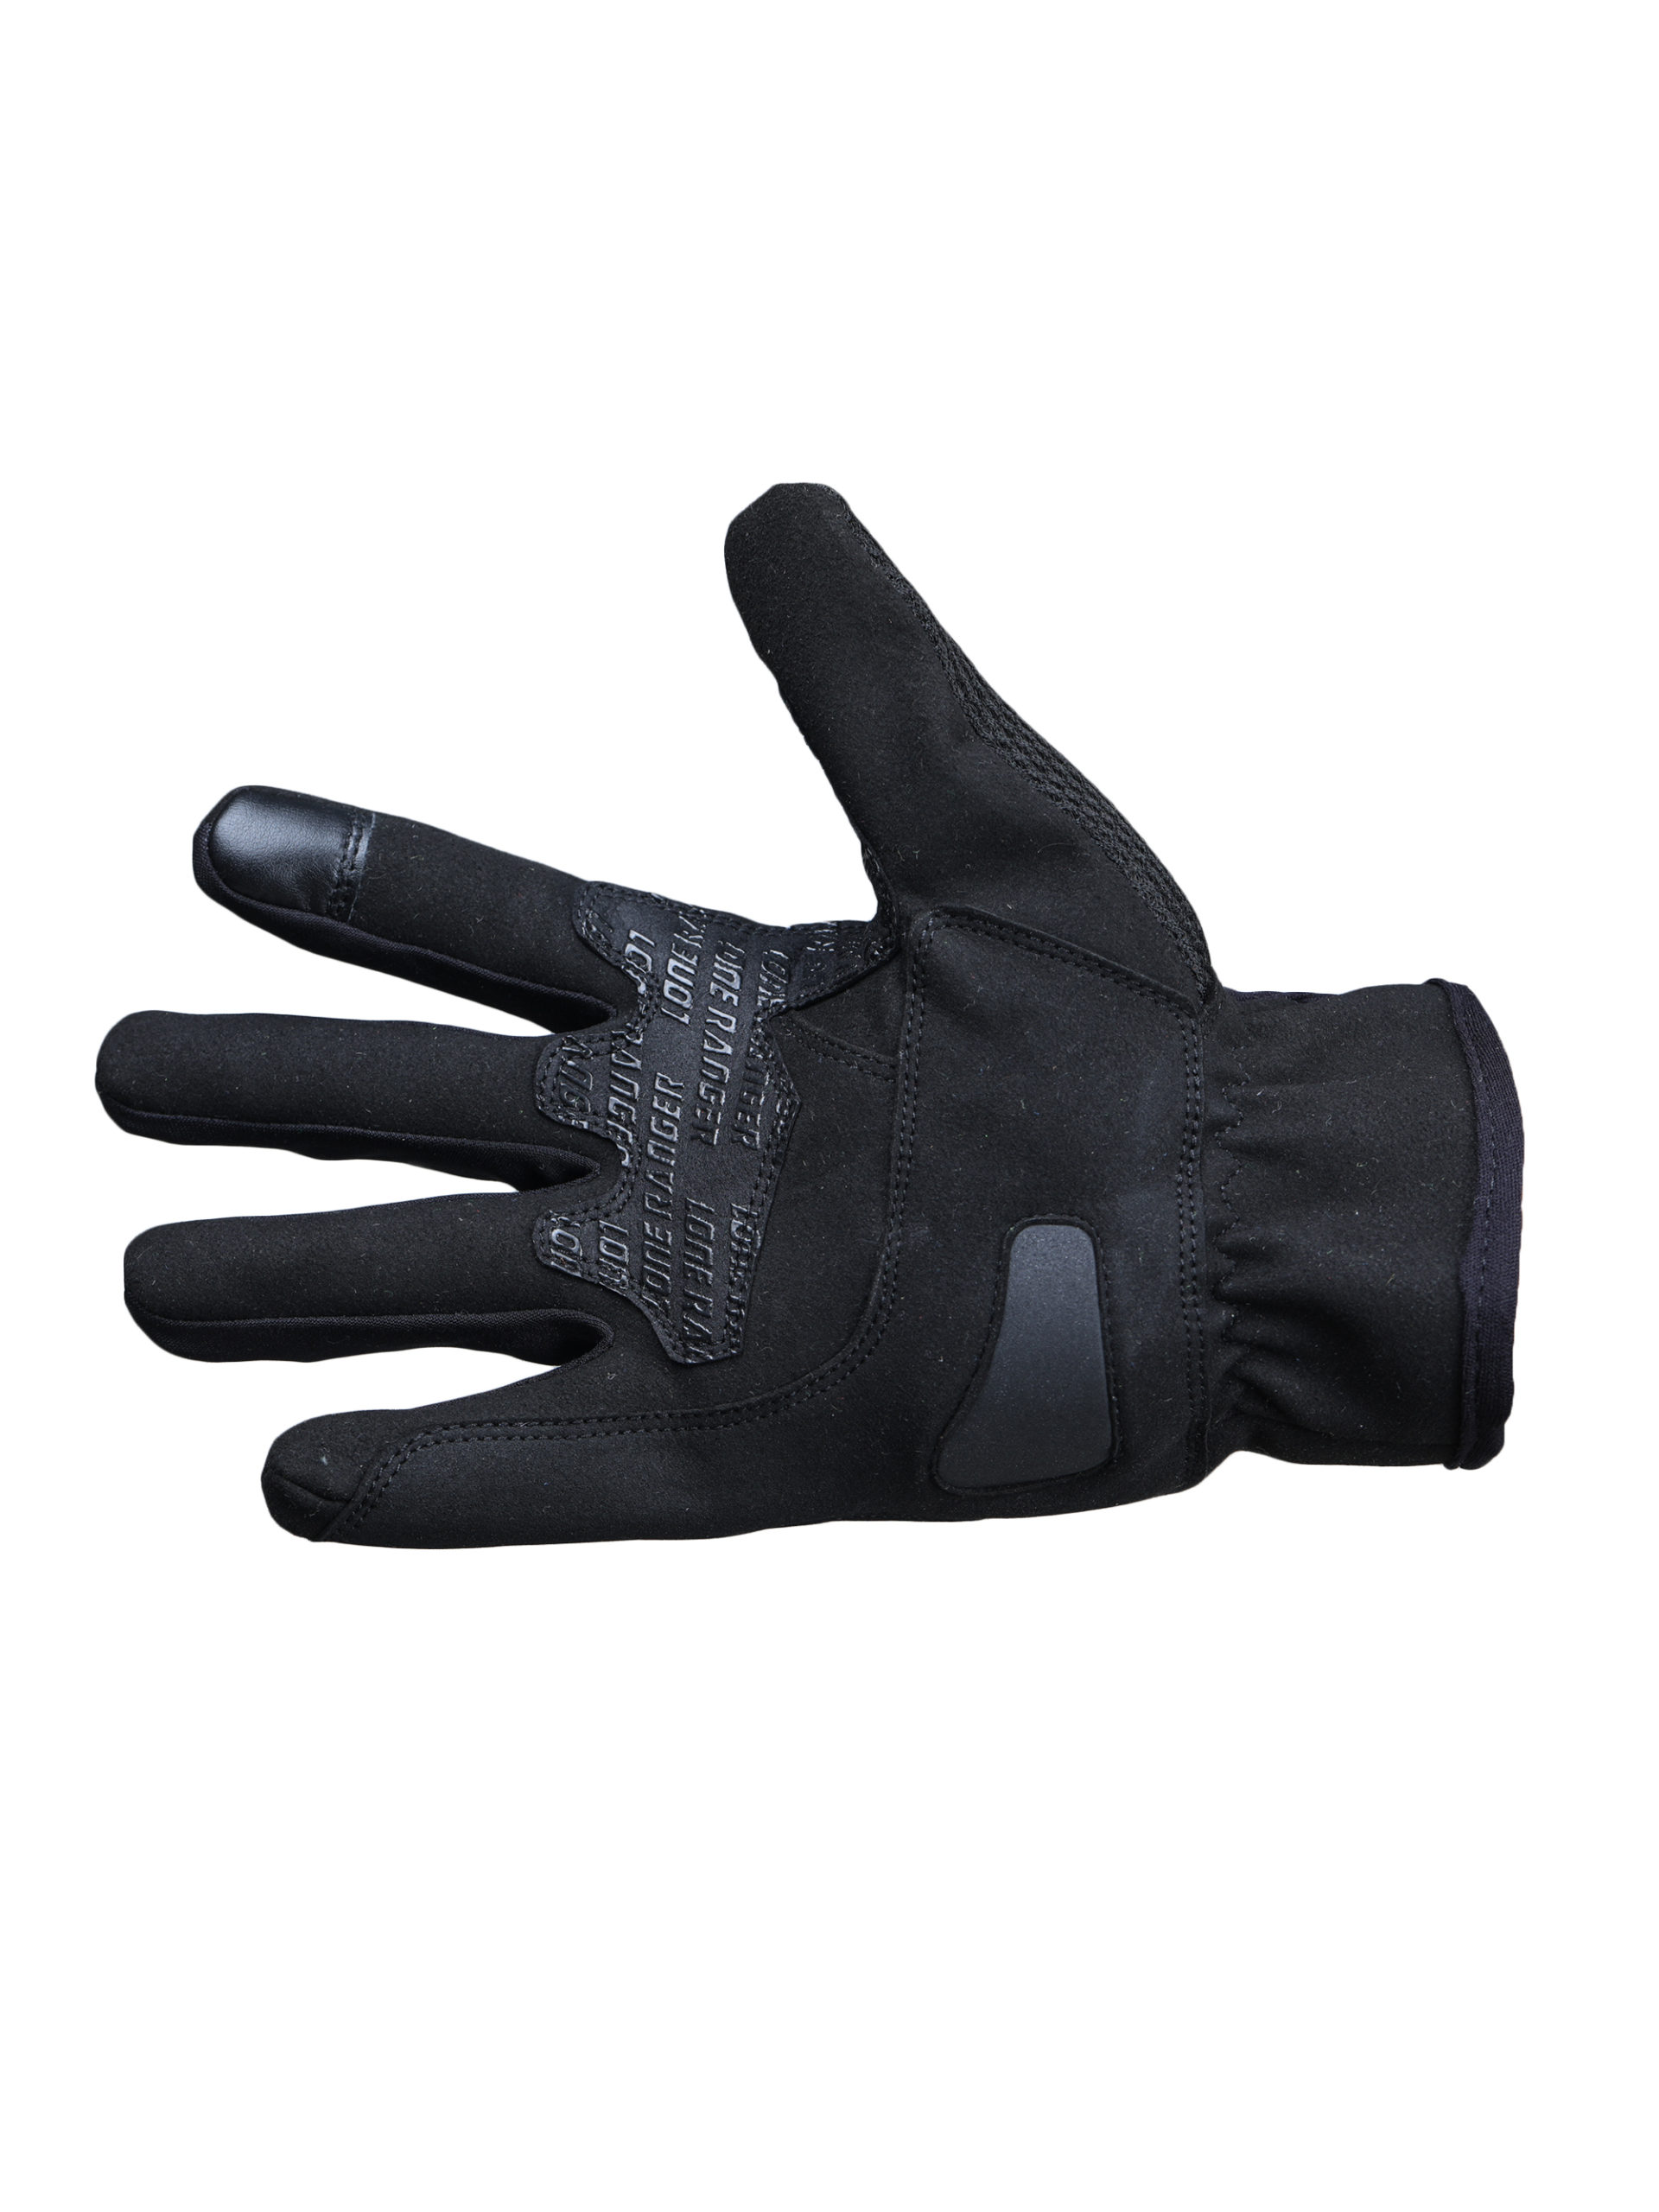 royal3aae5b_air-x-gloves-black3